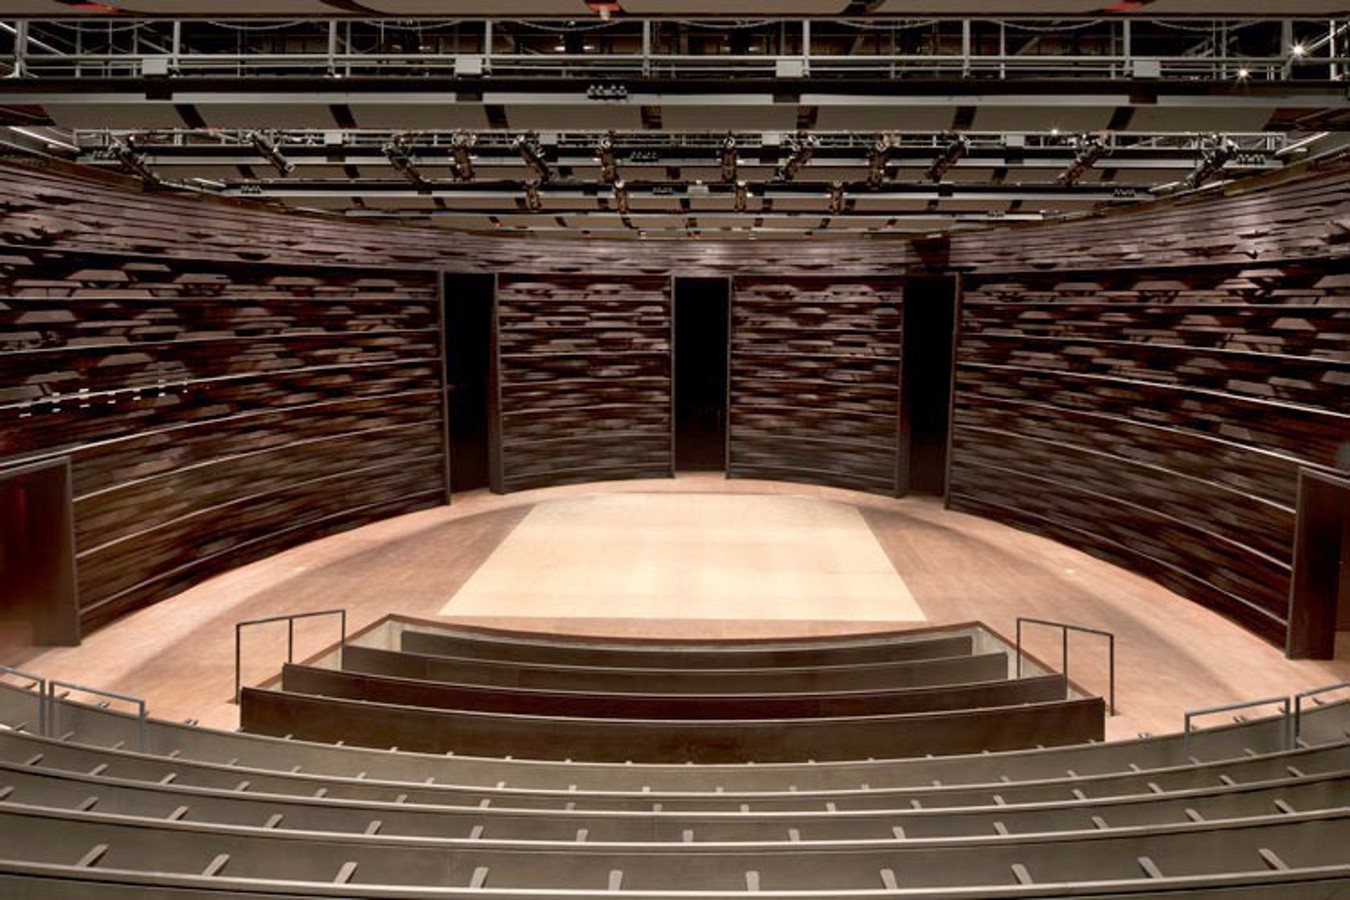 Arena Stage at the Mead Center for American Theater - Sheet2